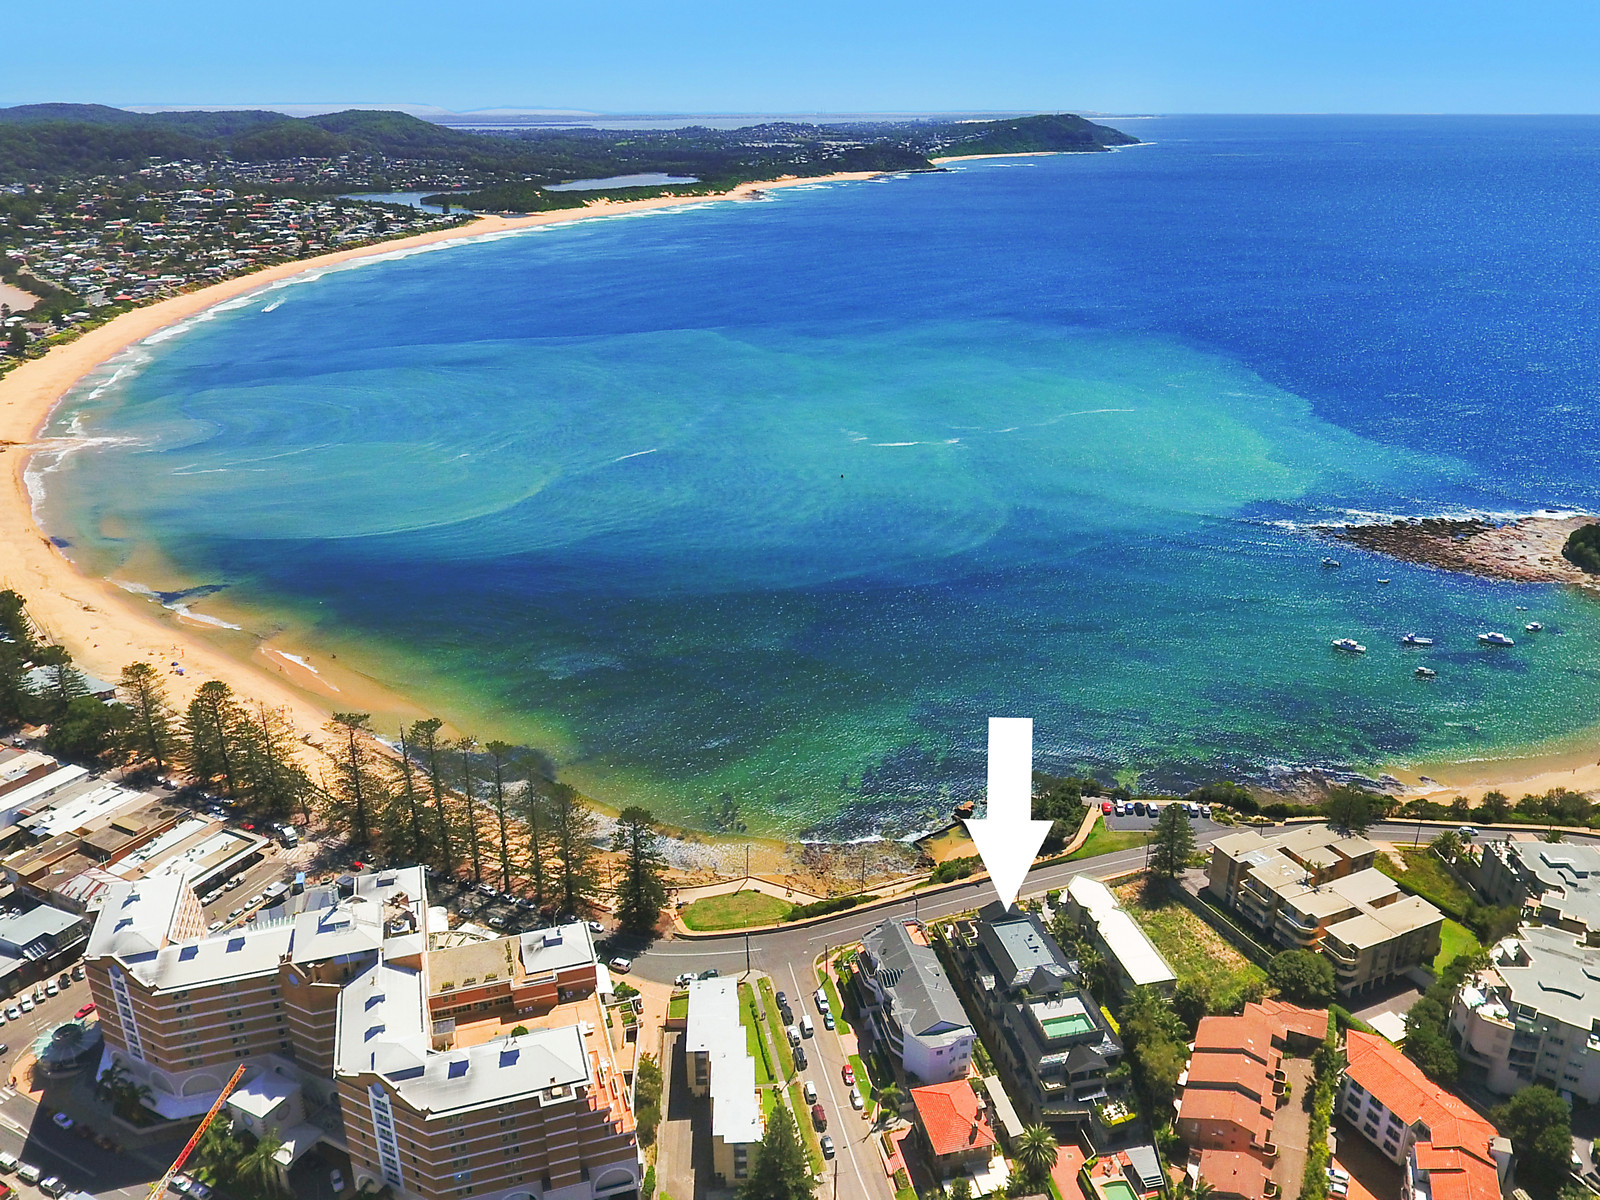 3 Bedrooms Central Coast Holiday Accommodationcentral Coast Holiday Accommodation